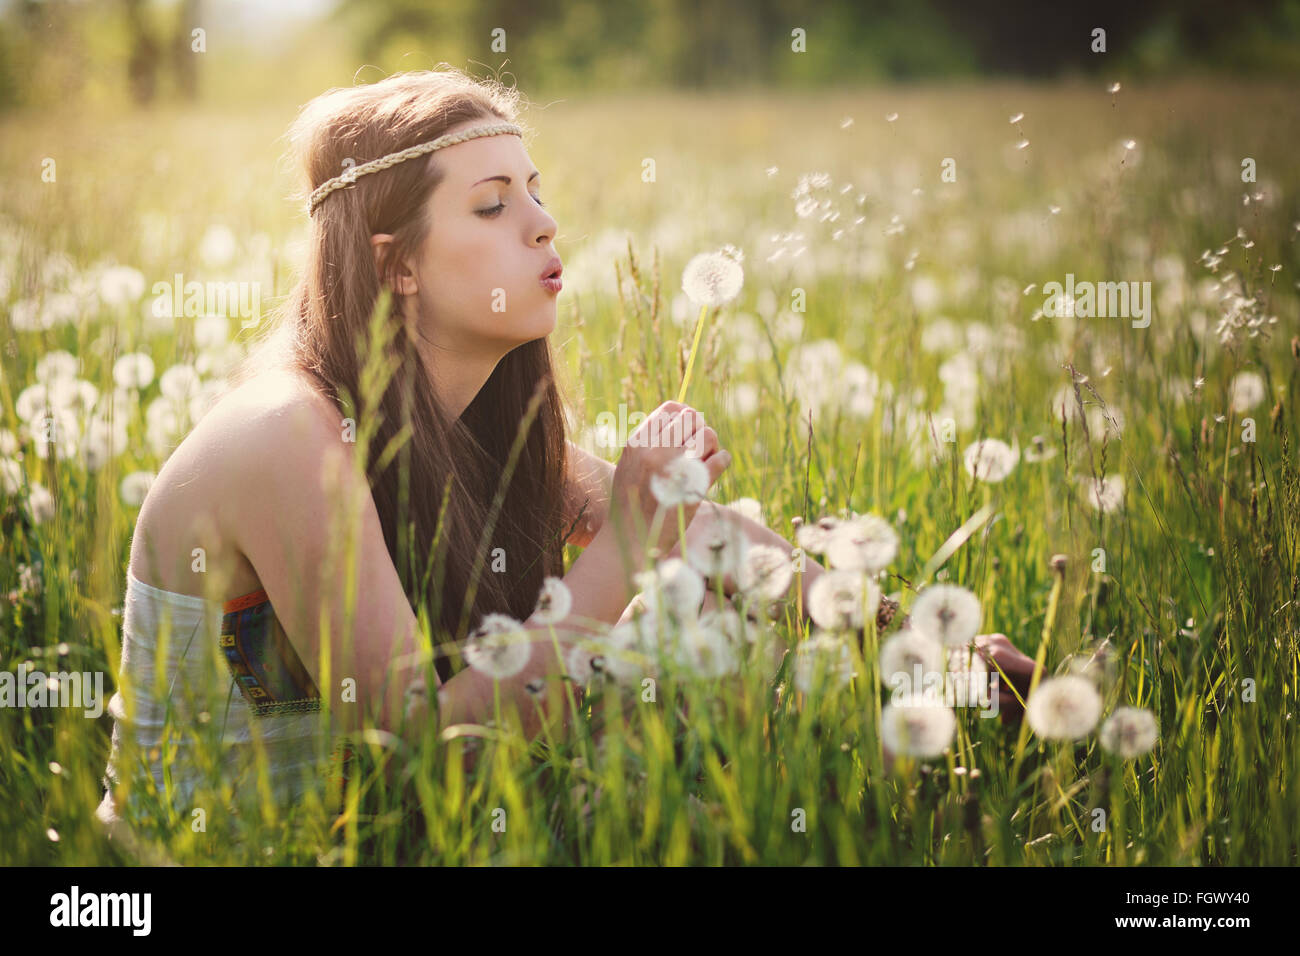 Beautiful hippie woman blowing dandelion flowers. Nature harmony - Stock Image